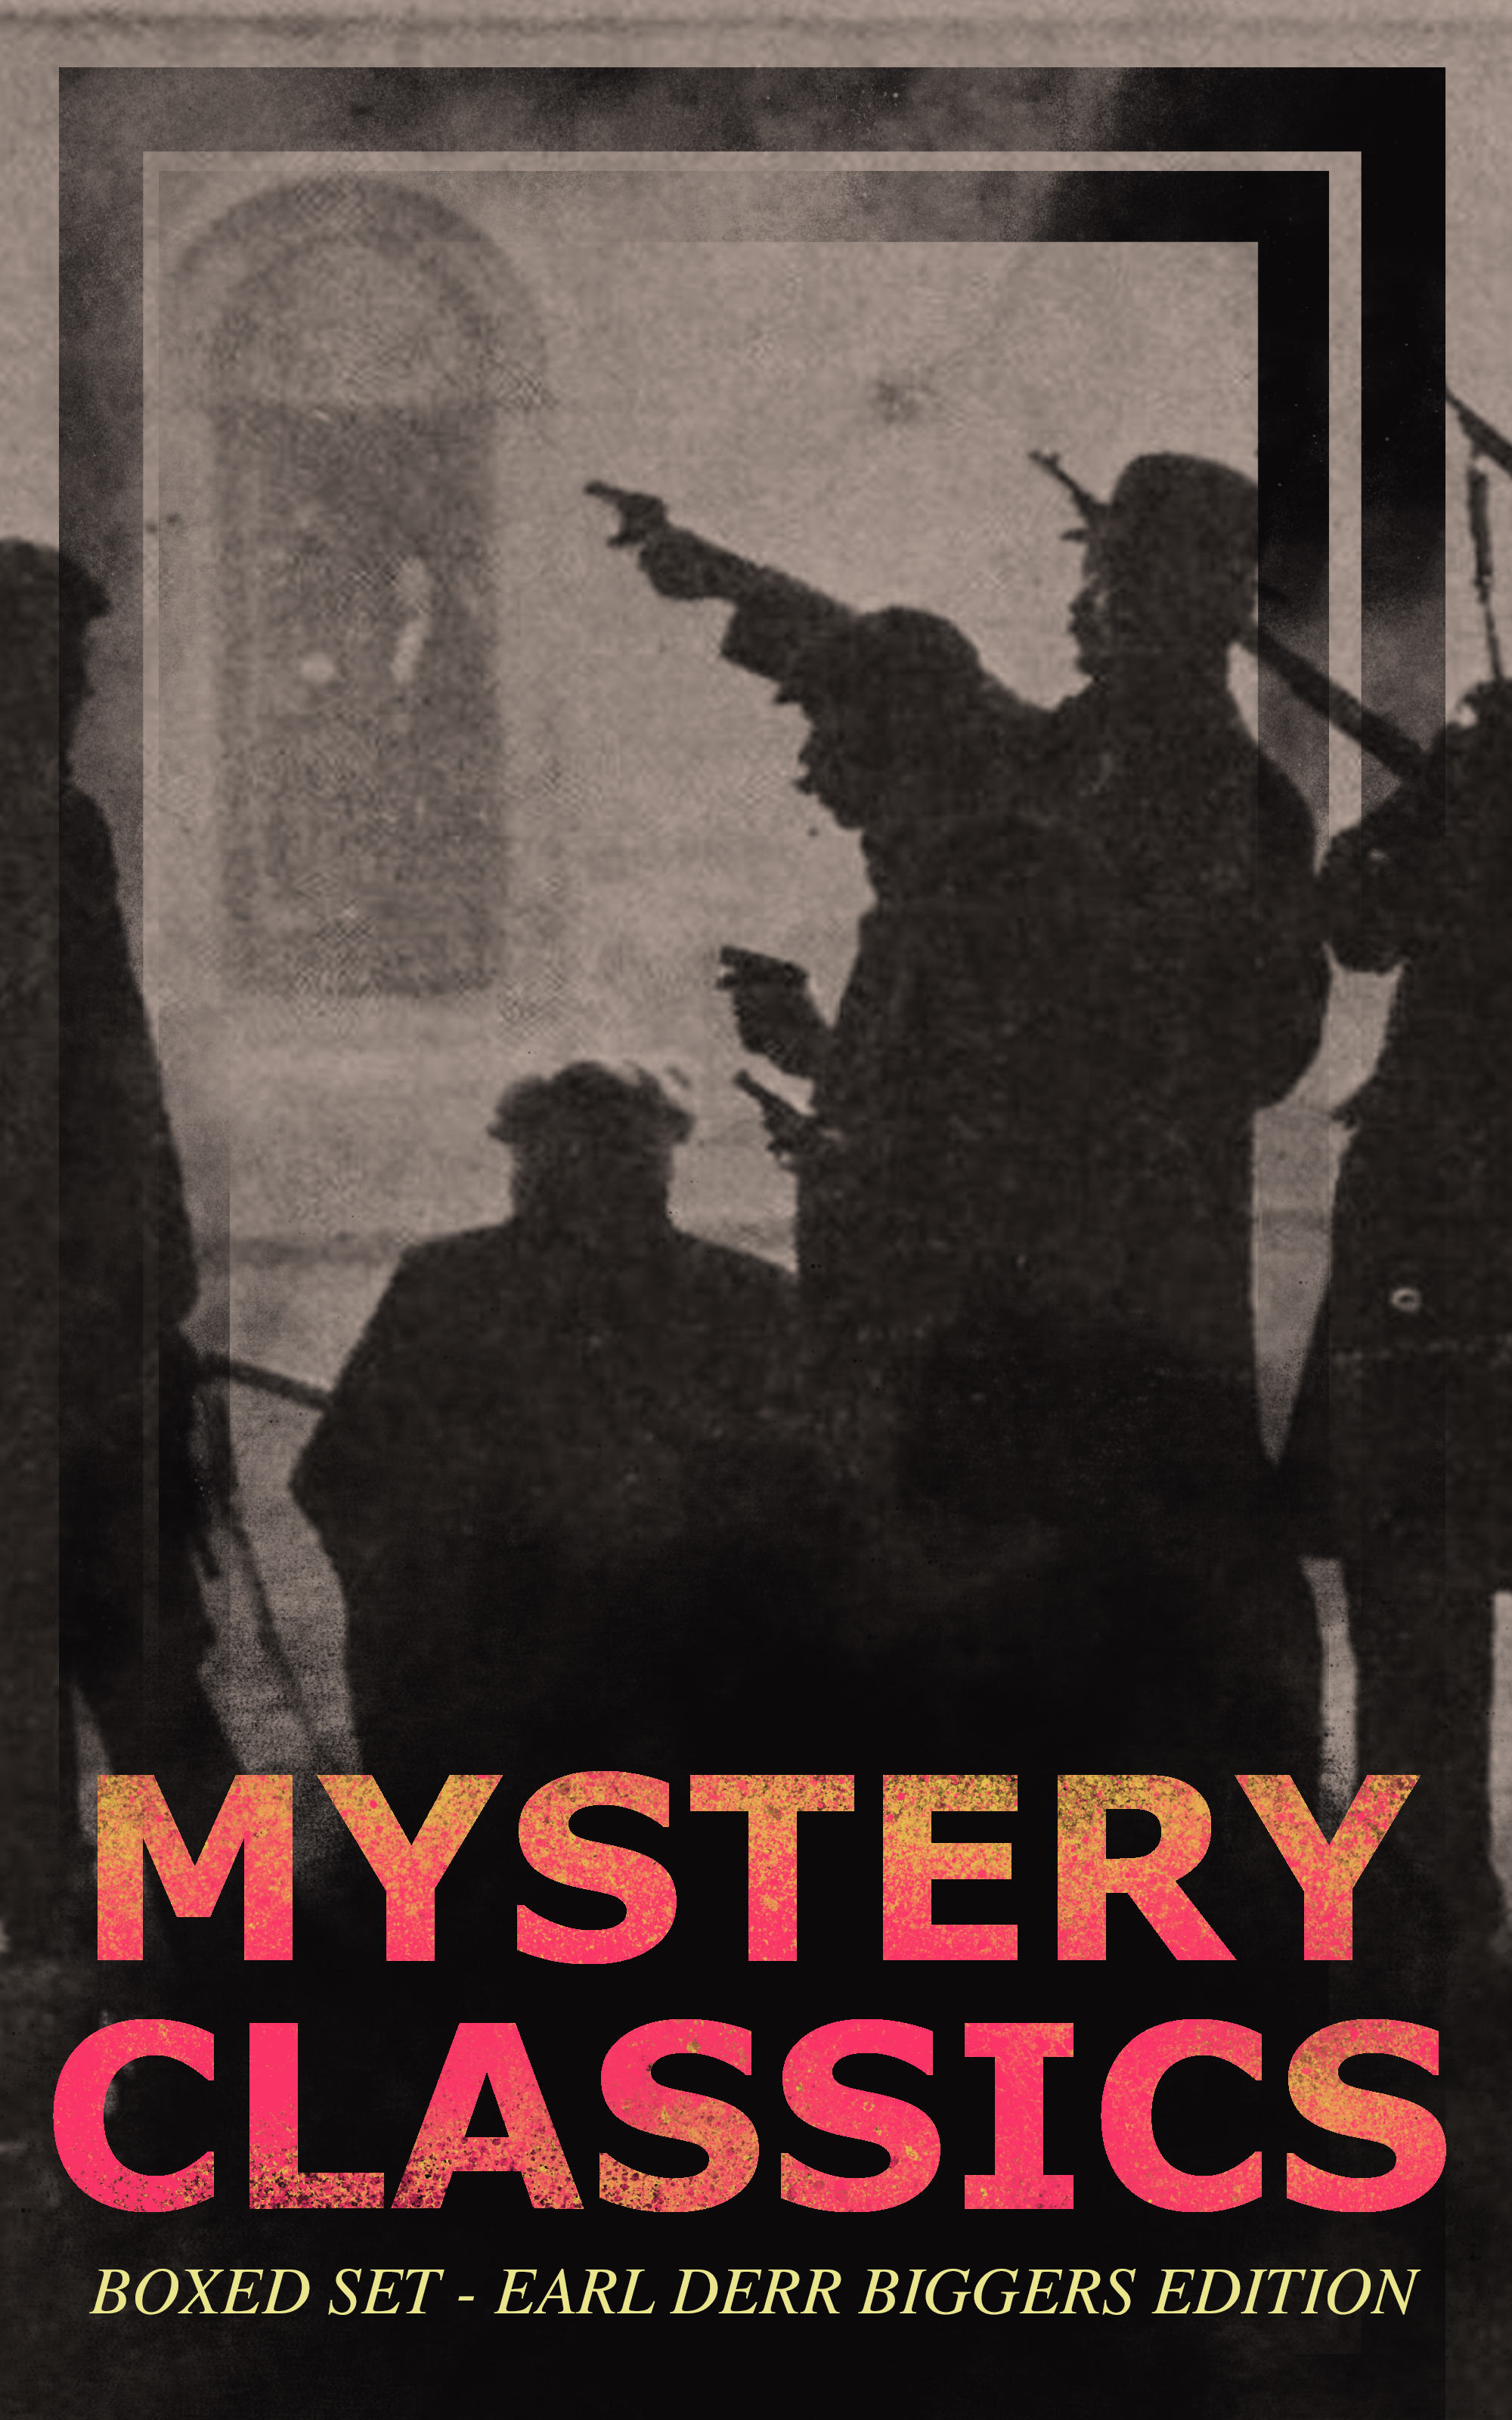 MYSTERY CLASSICS Boxed Set - Earl Derr Biggers Edition (Illustrated)